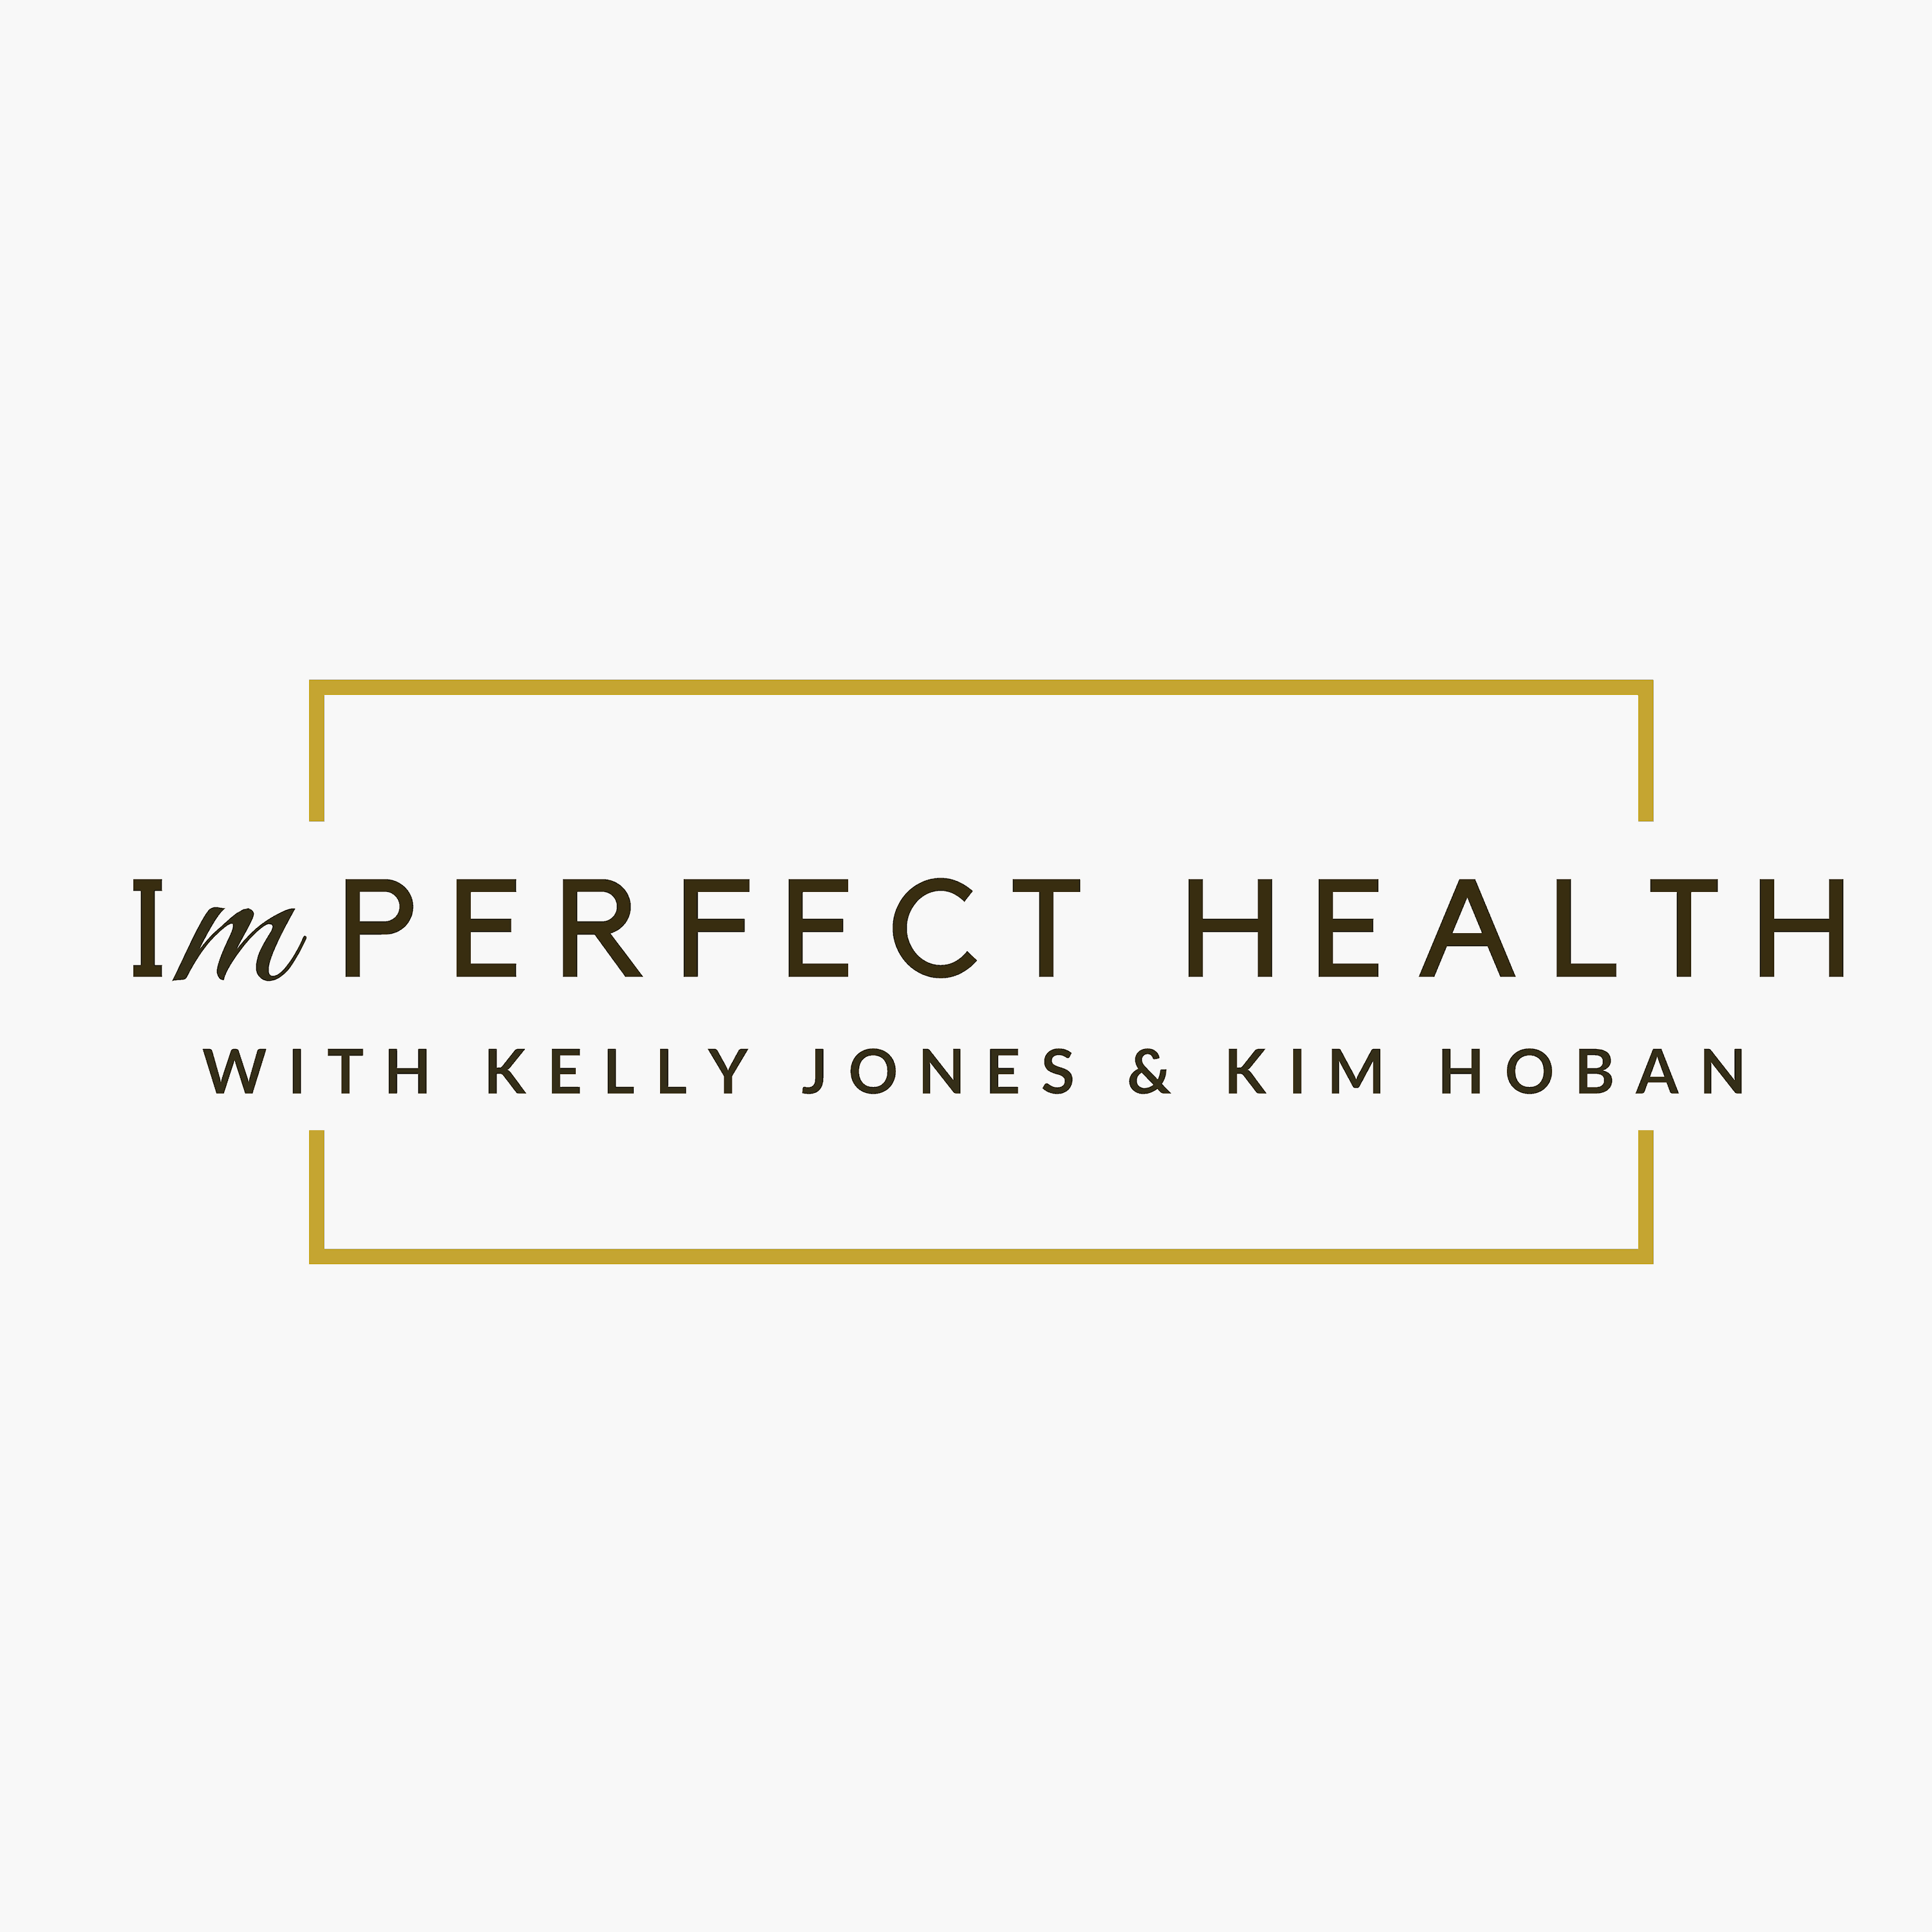 Imperfect Health with Kelly Jones & Kim Hoban